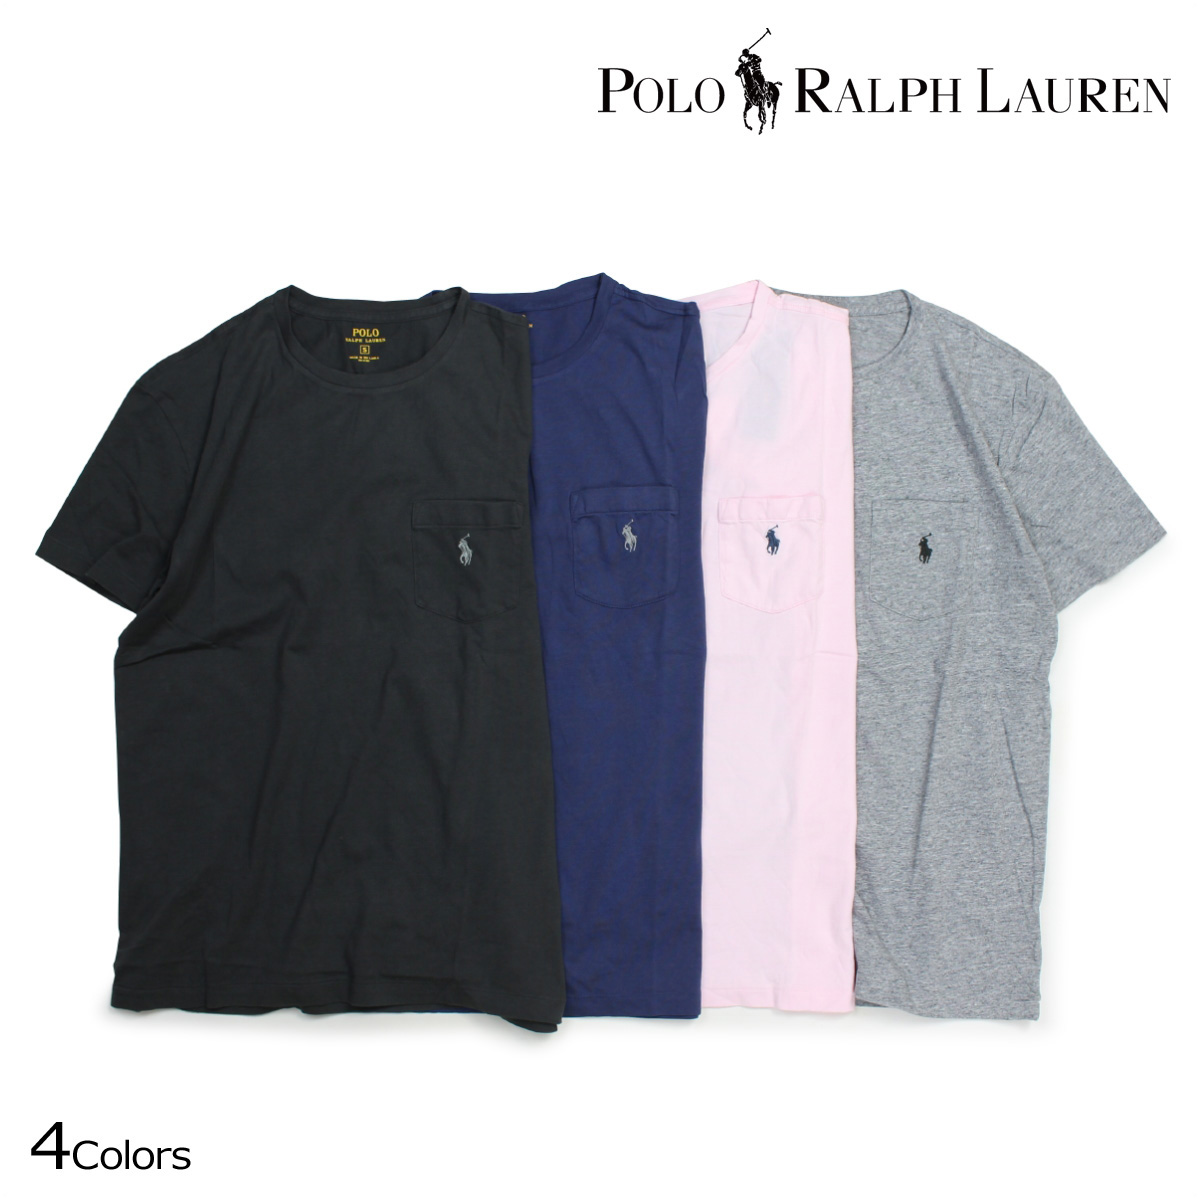 0666591b2769 Ralph Lauren T-shirt men short sleeves POLO RALPH LAUREN U neck polo T-shirt  T-SHIRTS TEE 4 color  7 26 Shinnyu load